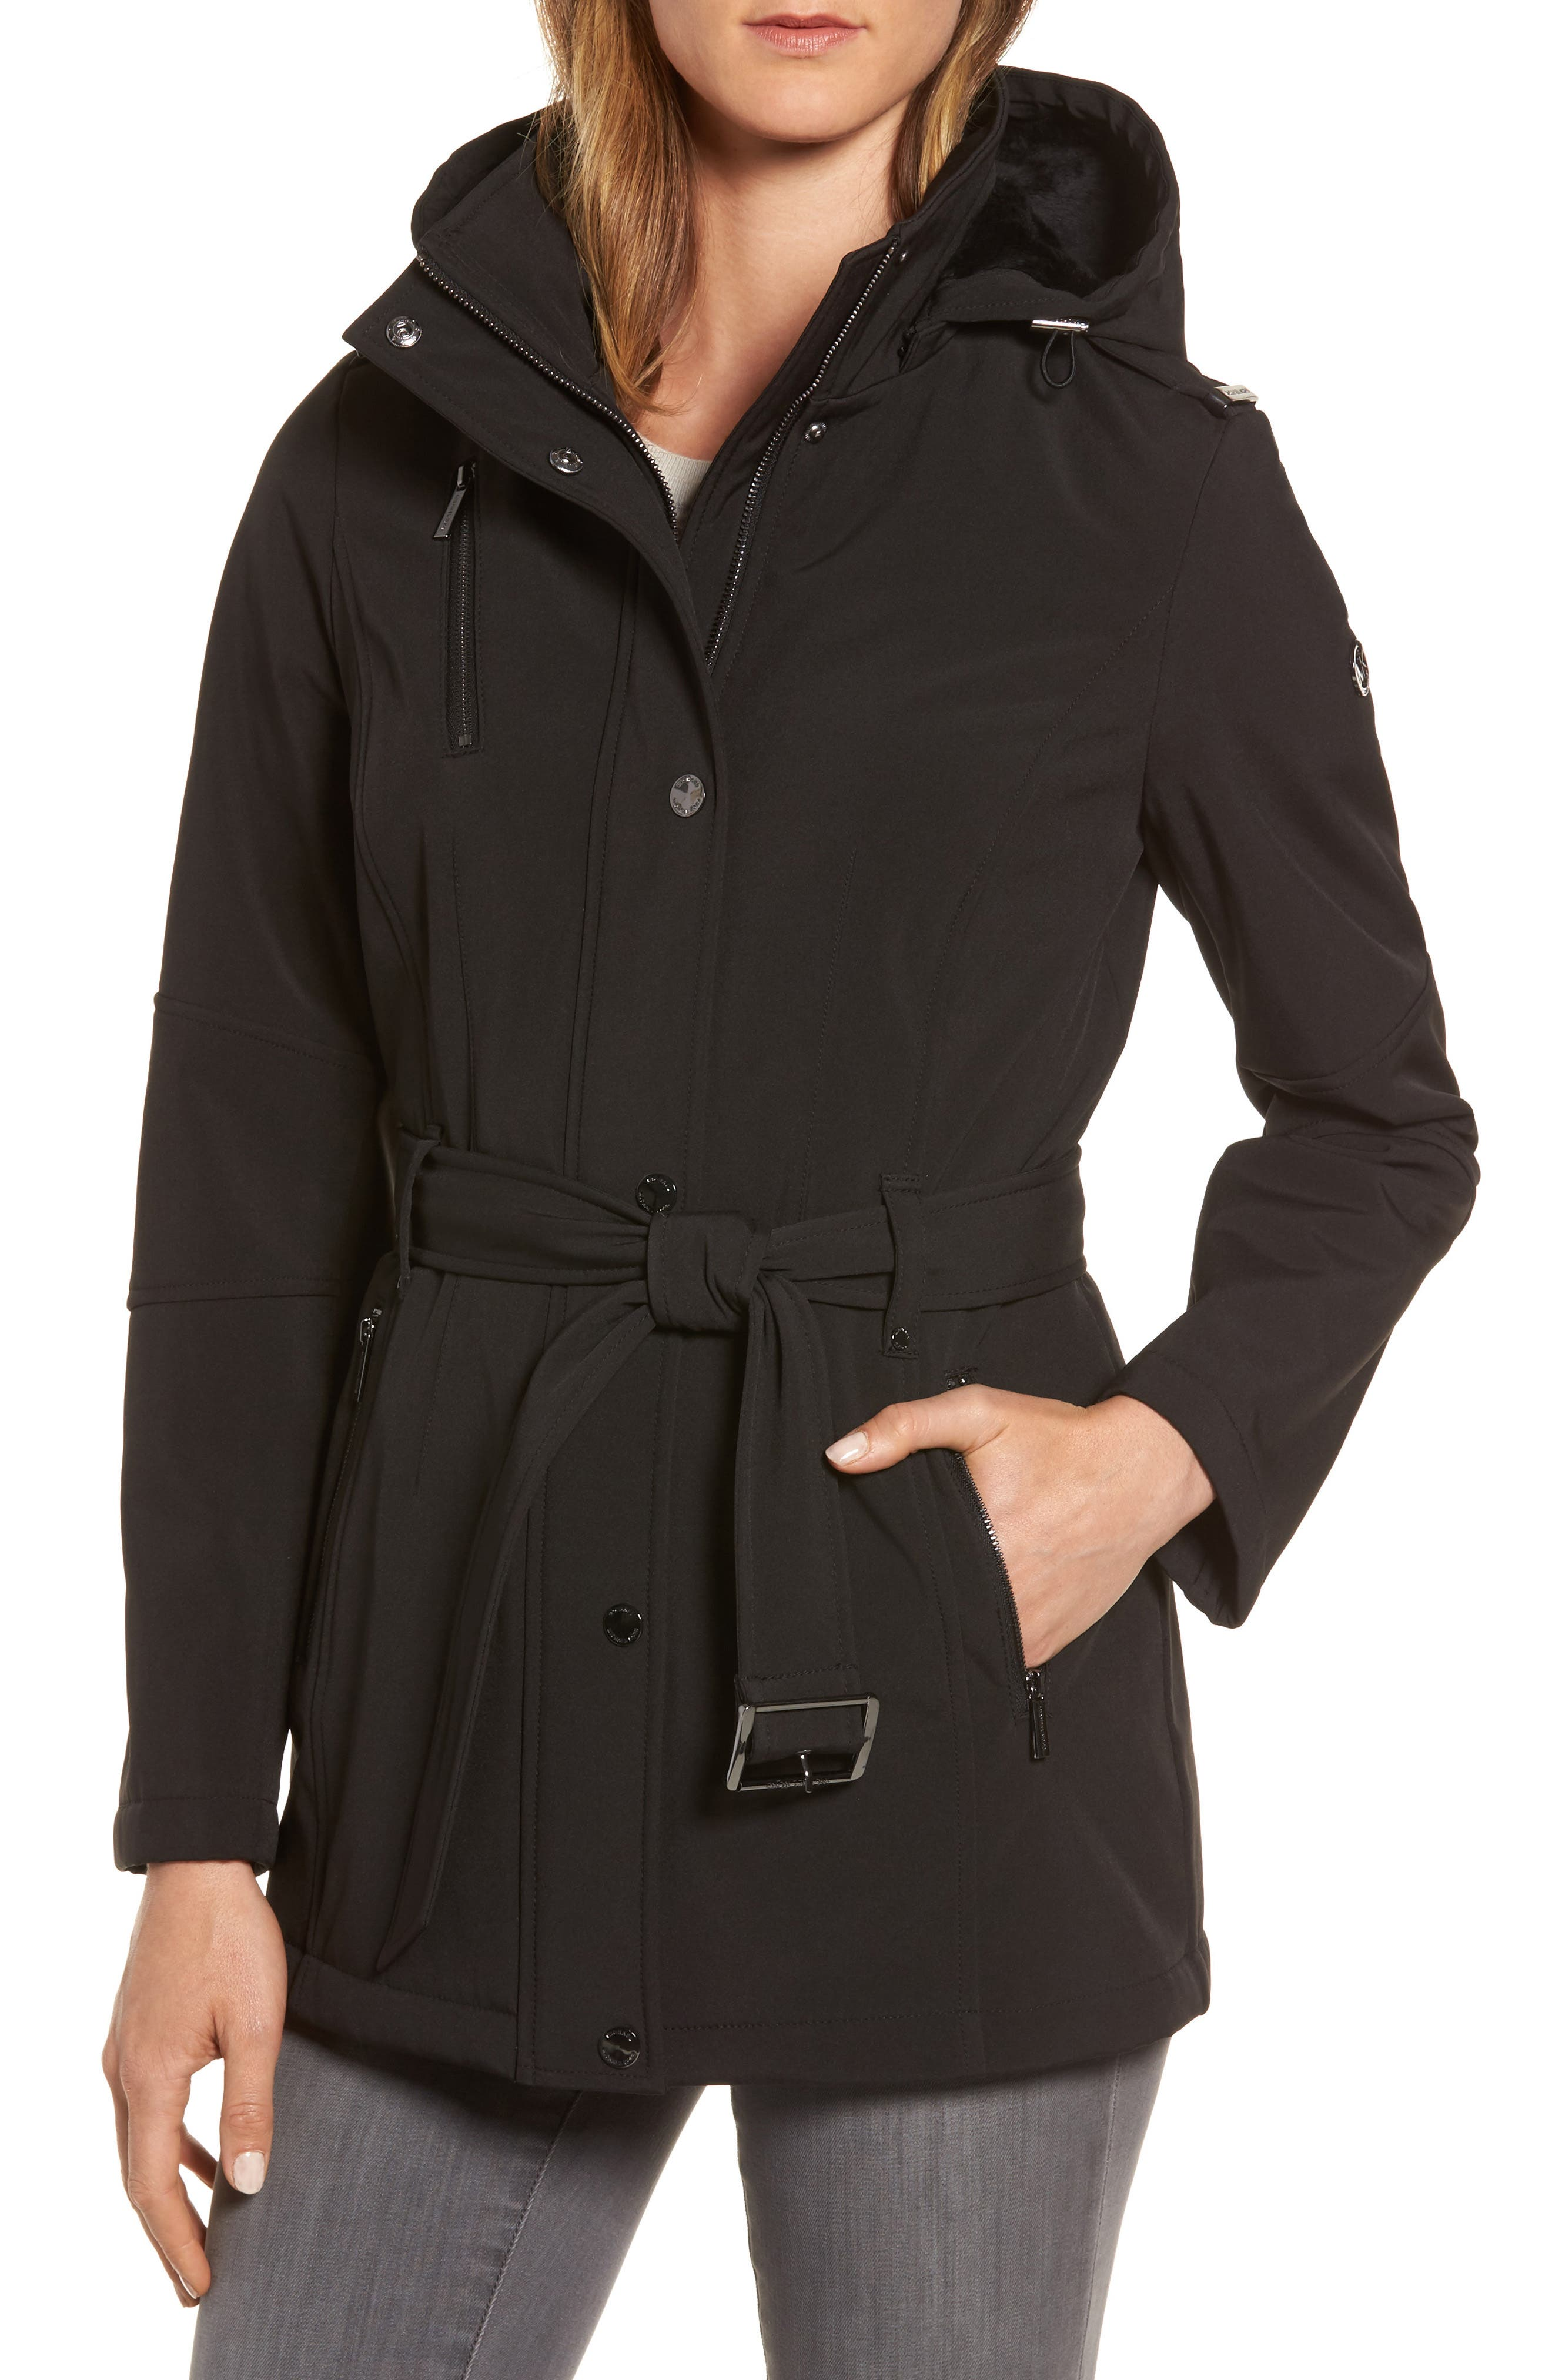 Waterproof Belted Jacket with Detachable Hood,                             Main thumbnail 1, color,                             001